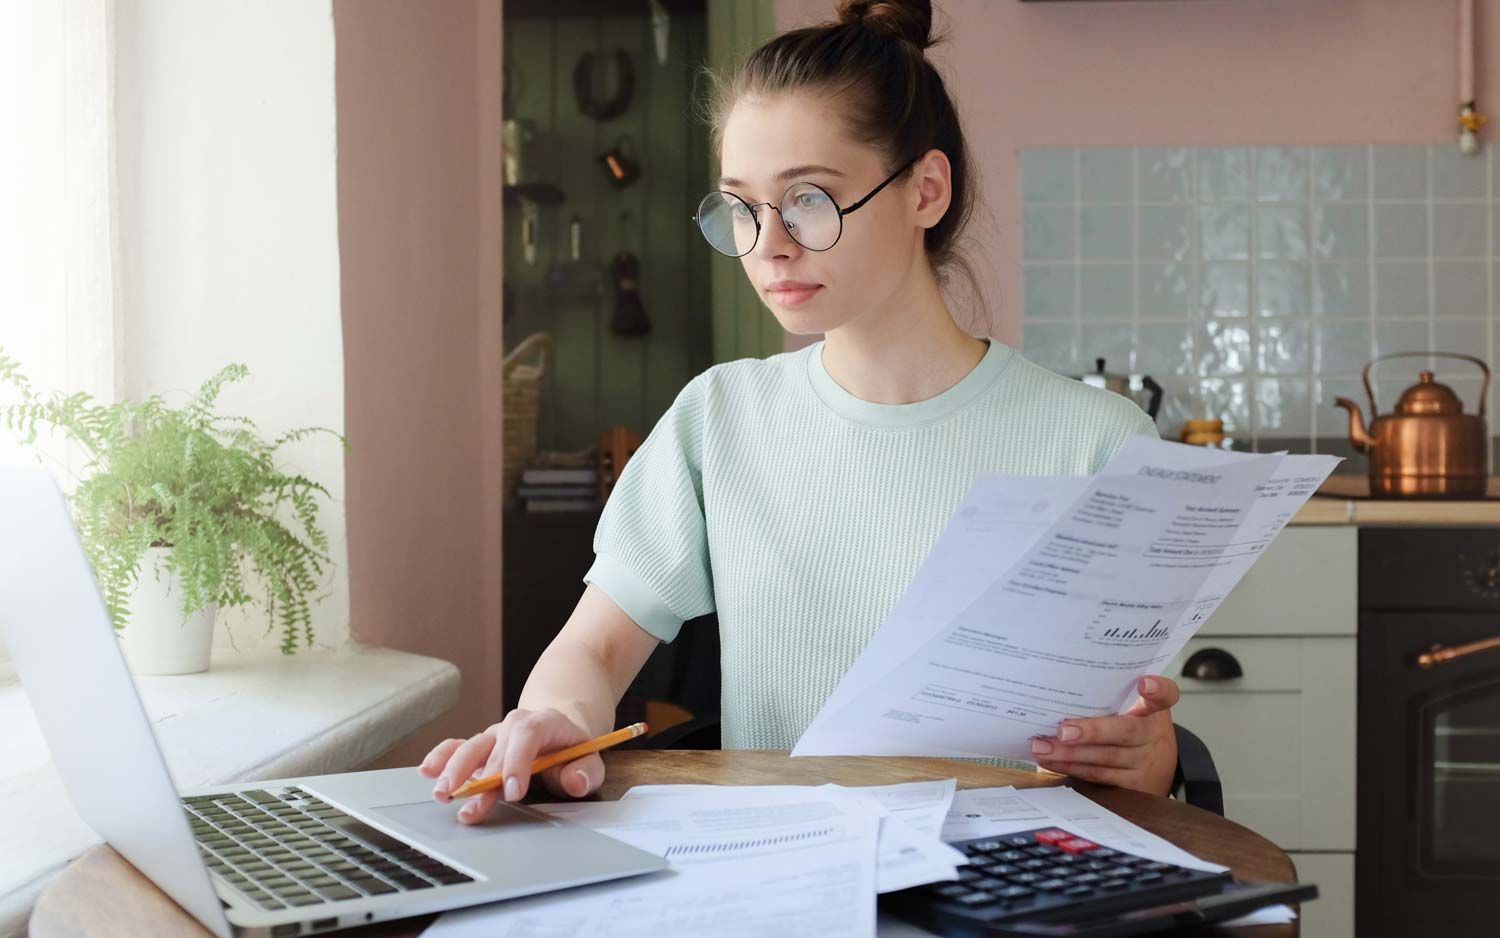 Best Tax Software 2019: TurboTax vs  H&R Block vs  TaxAct